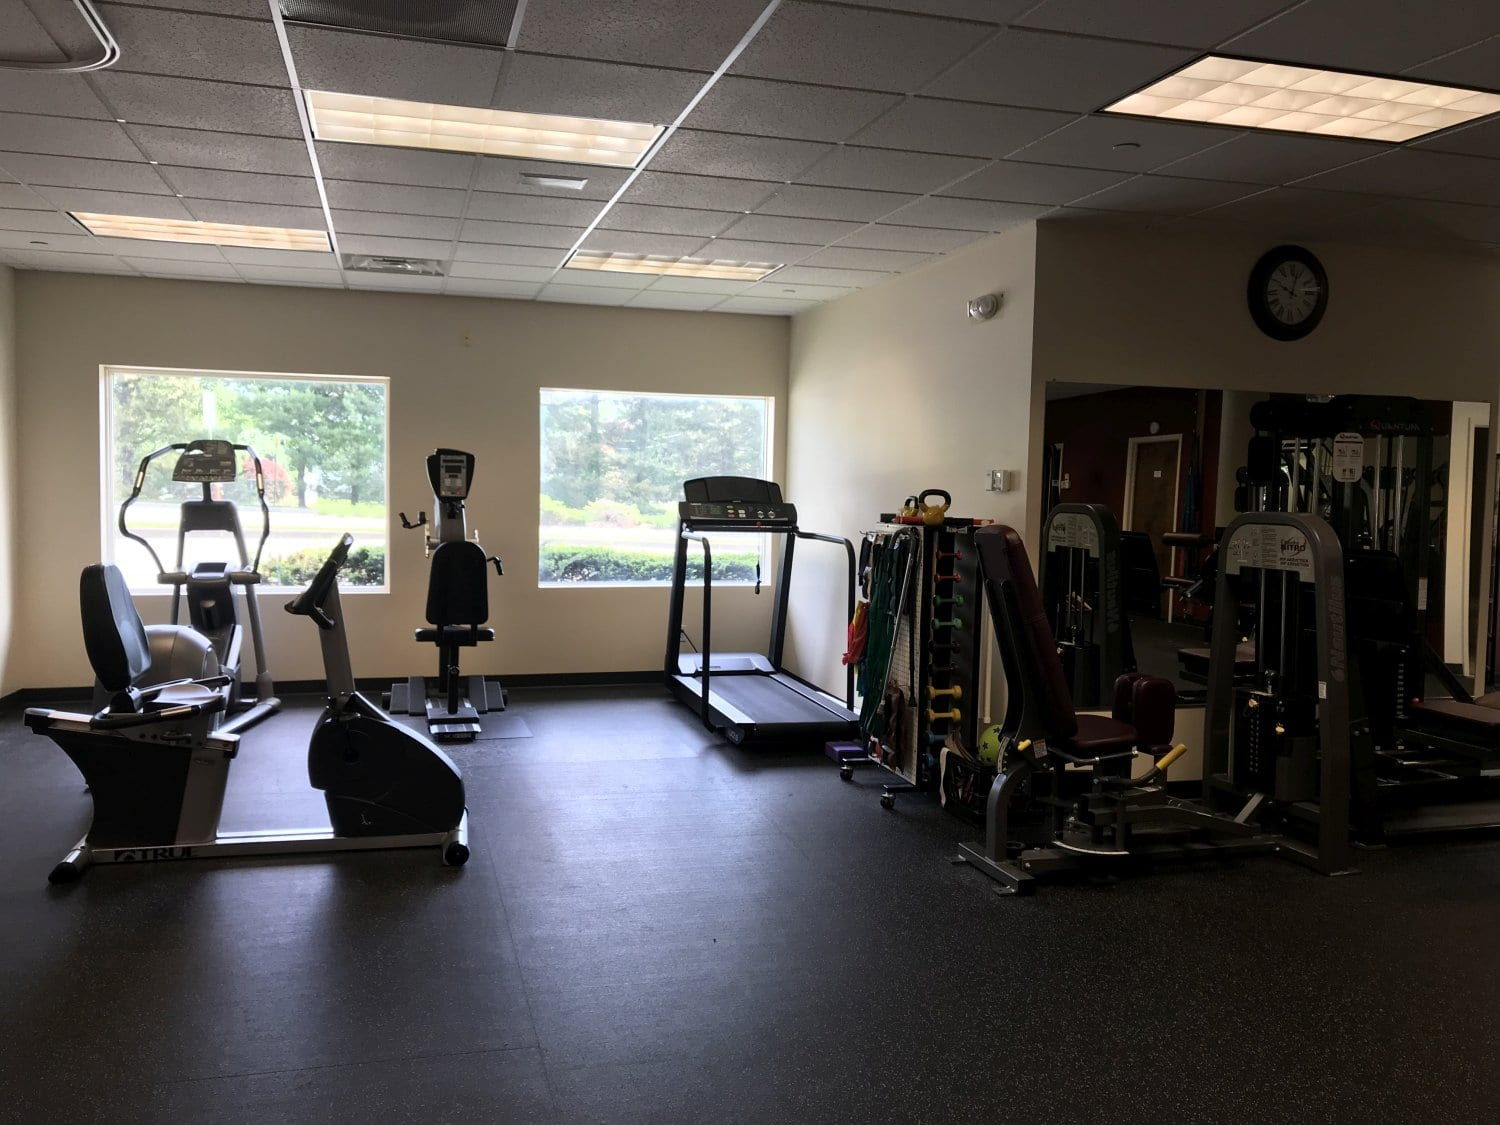 An image of the interior of our physical therapy clinic in East Hanover, New Jersey.